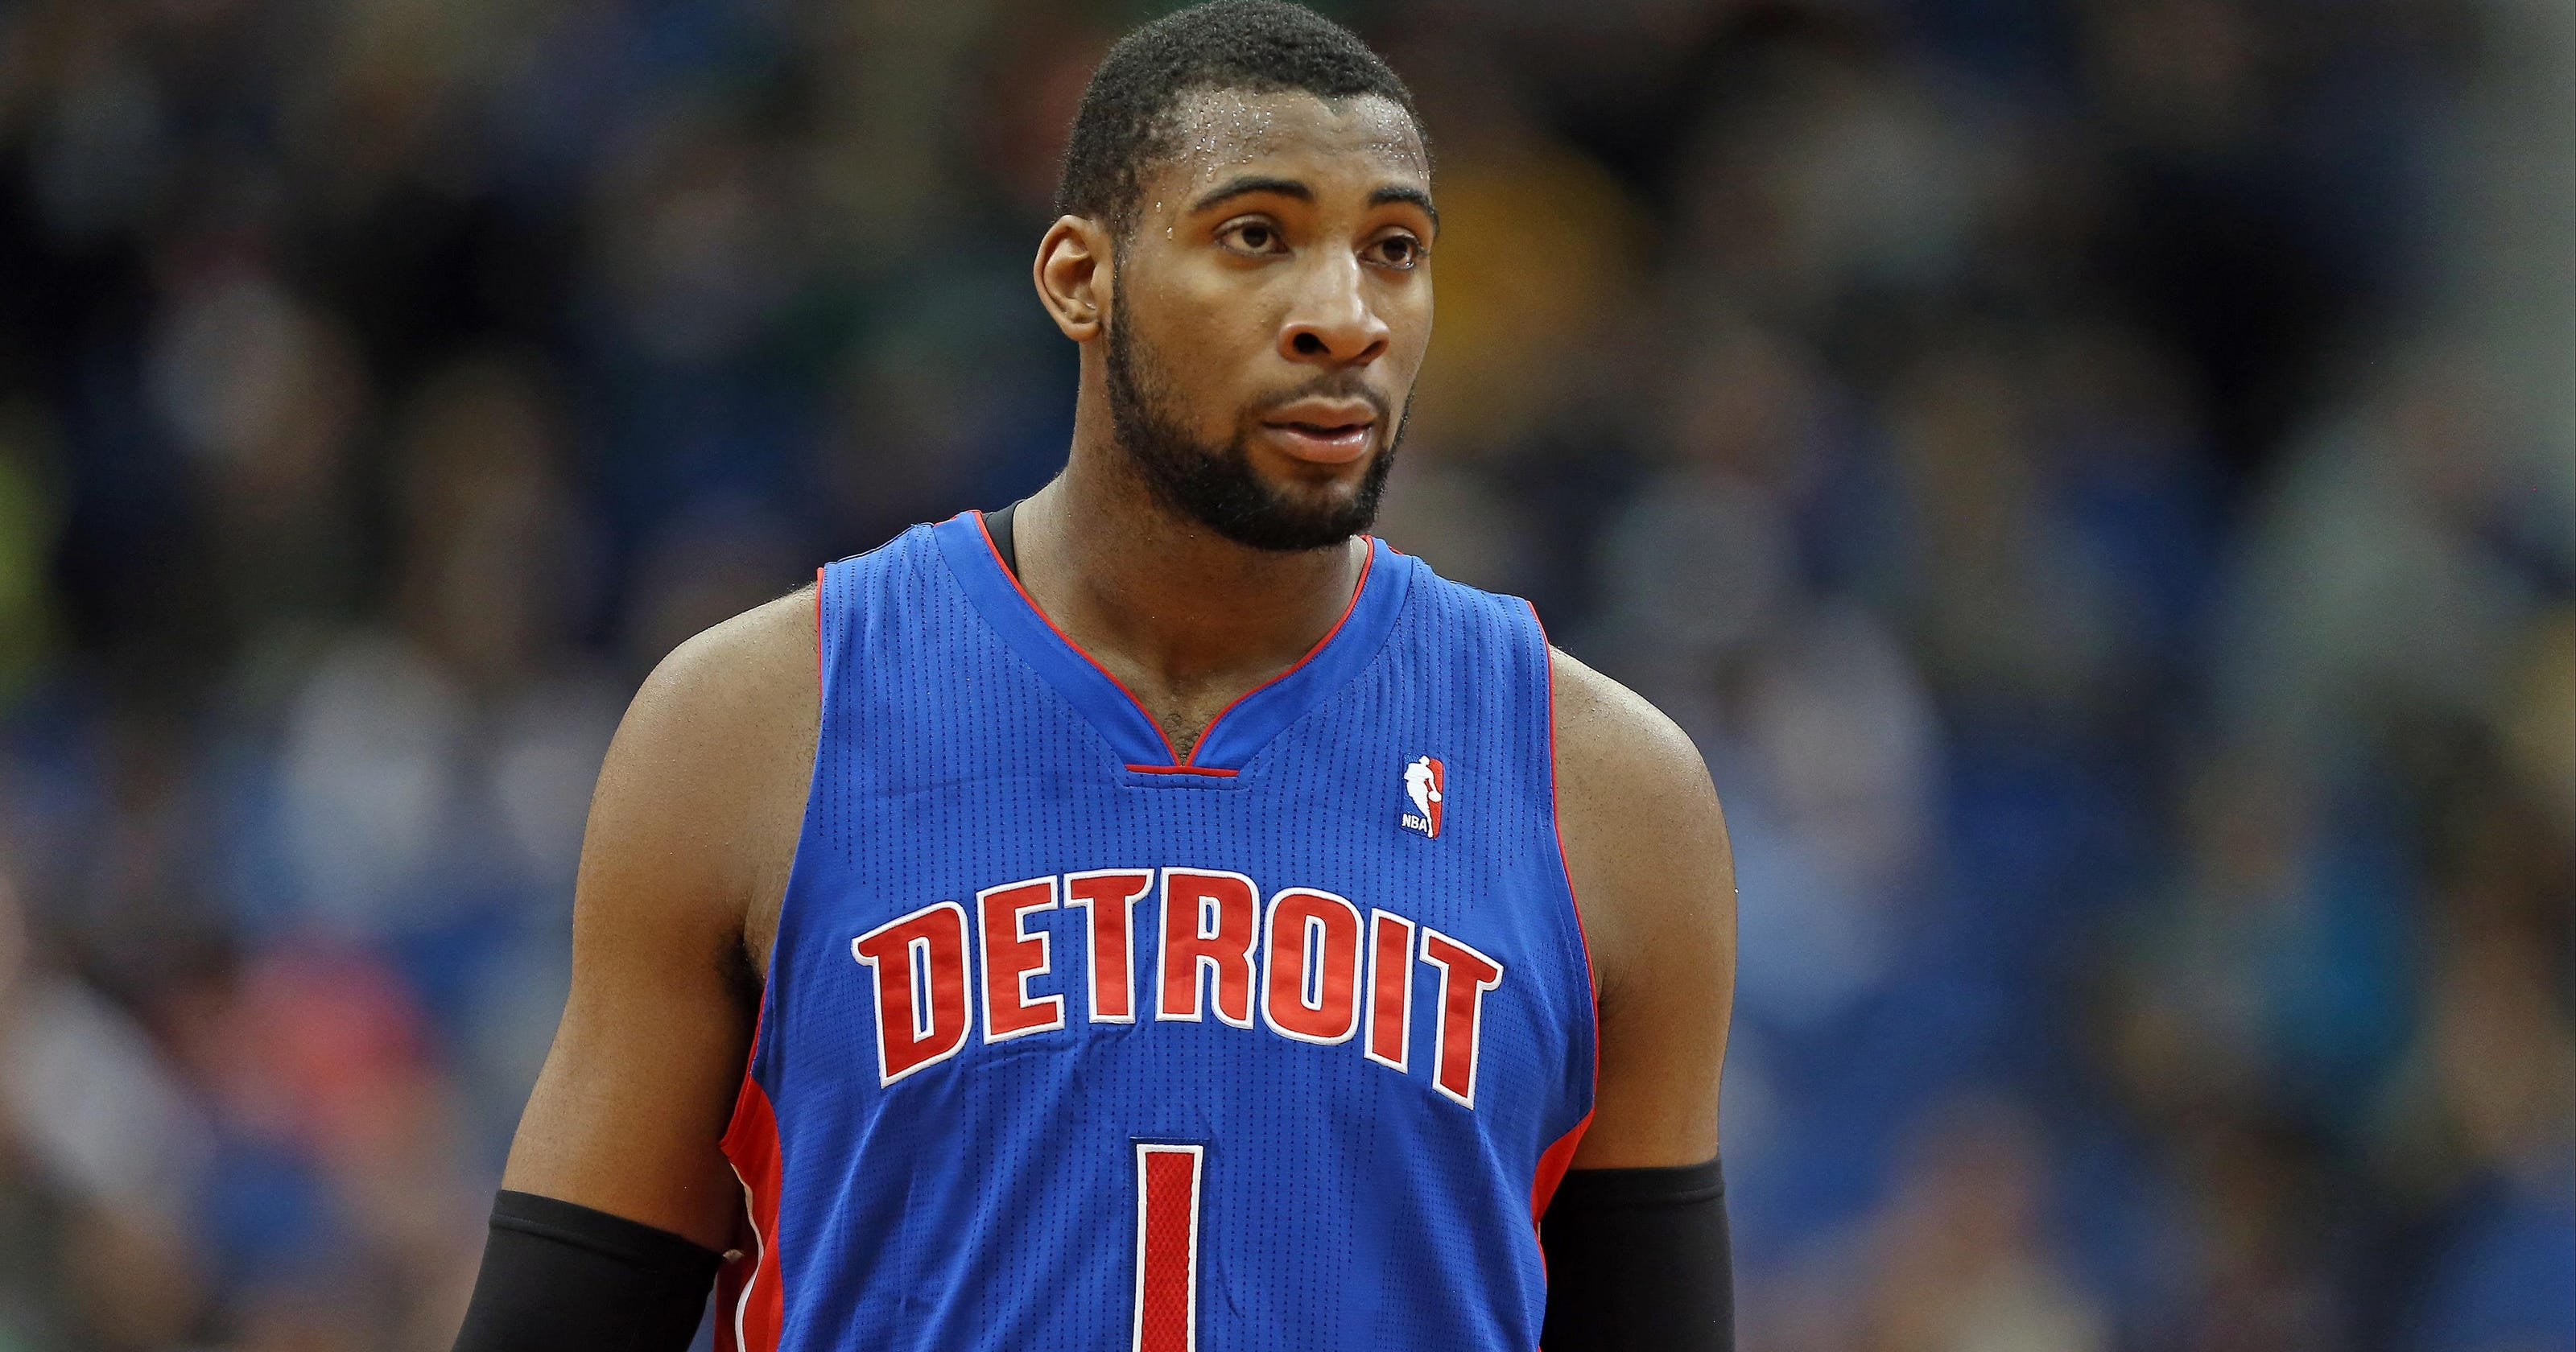 sale retailer 5cdff 0bba8 Andre Drummond plans to work with Hakeem Olajuwon